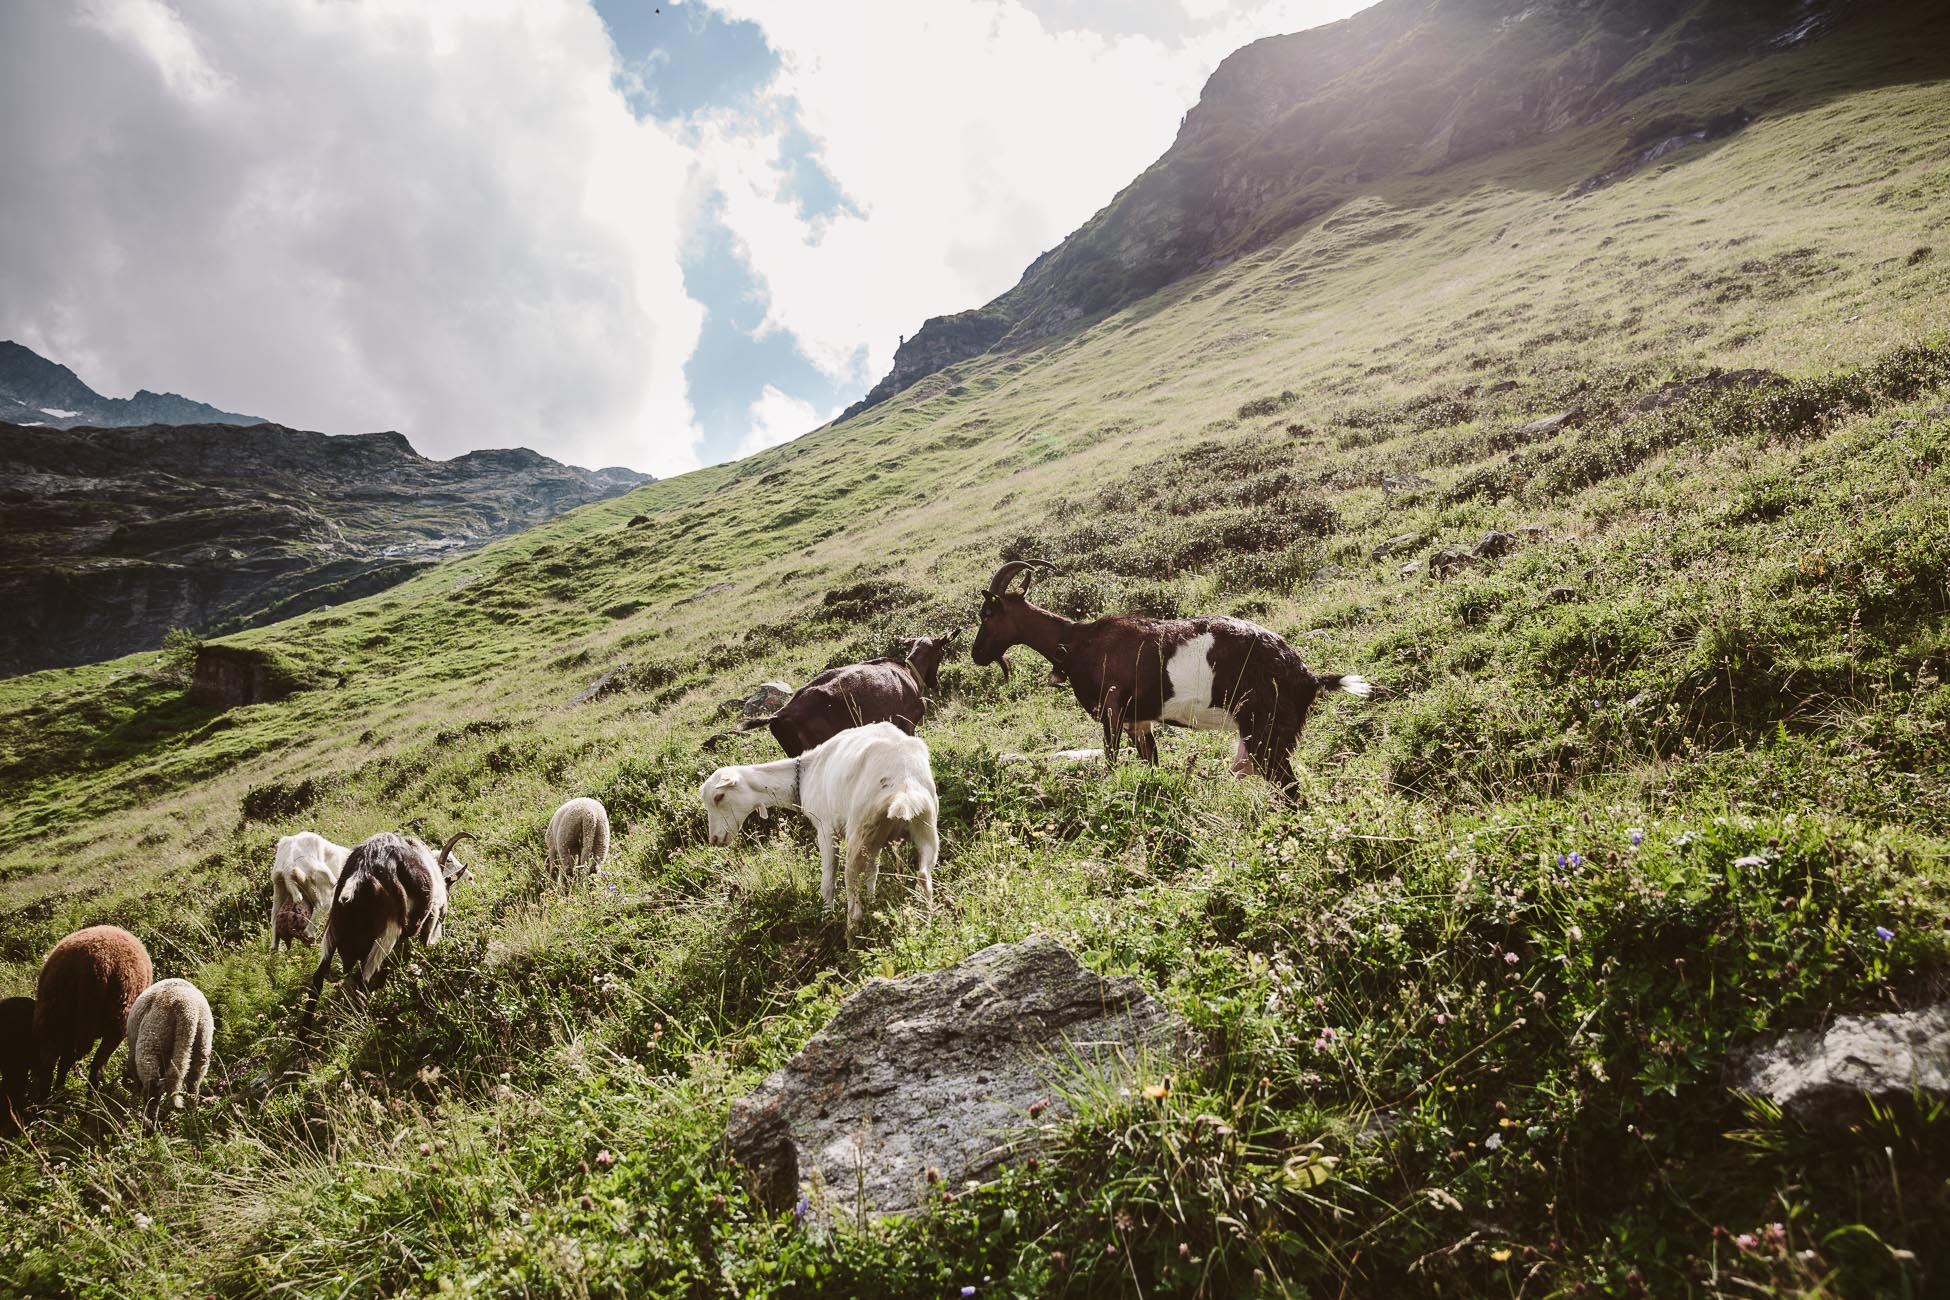 Goats in National Park Hohe Tauern